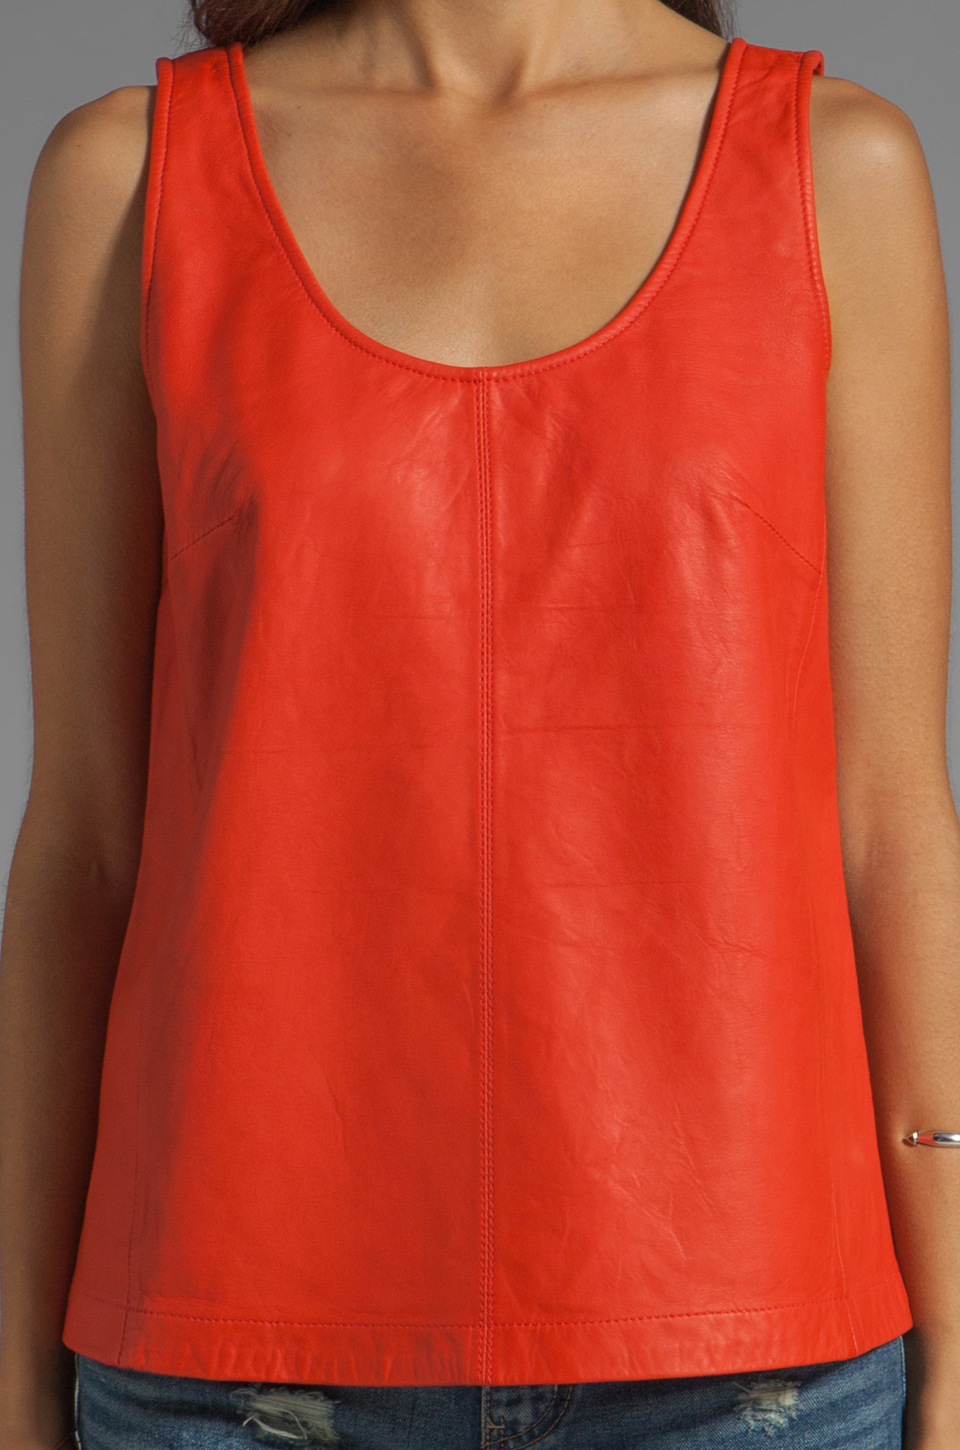 Marc by Marc Jacobs Jett Leather Top in Flamingo Red